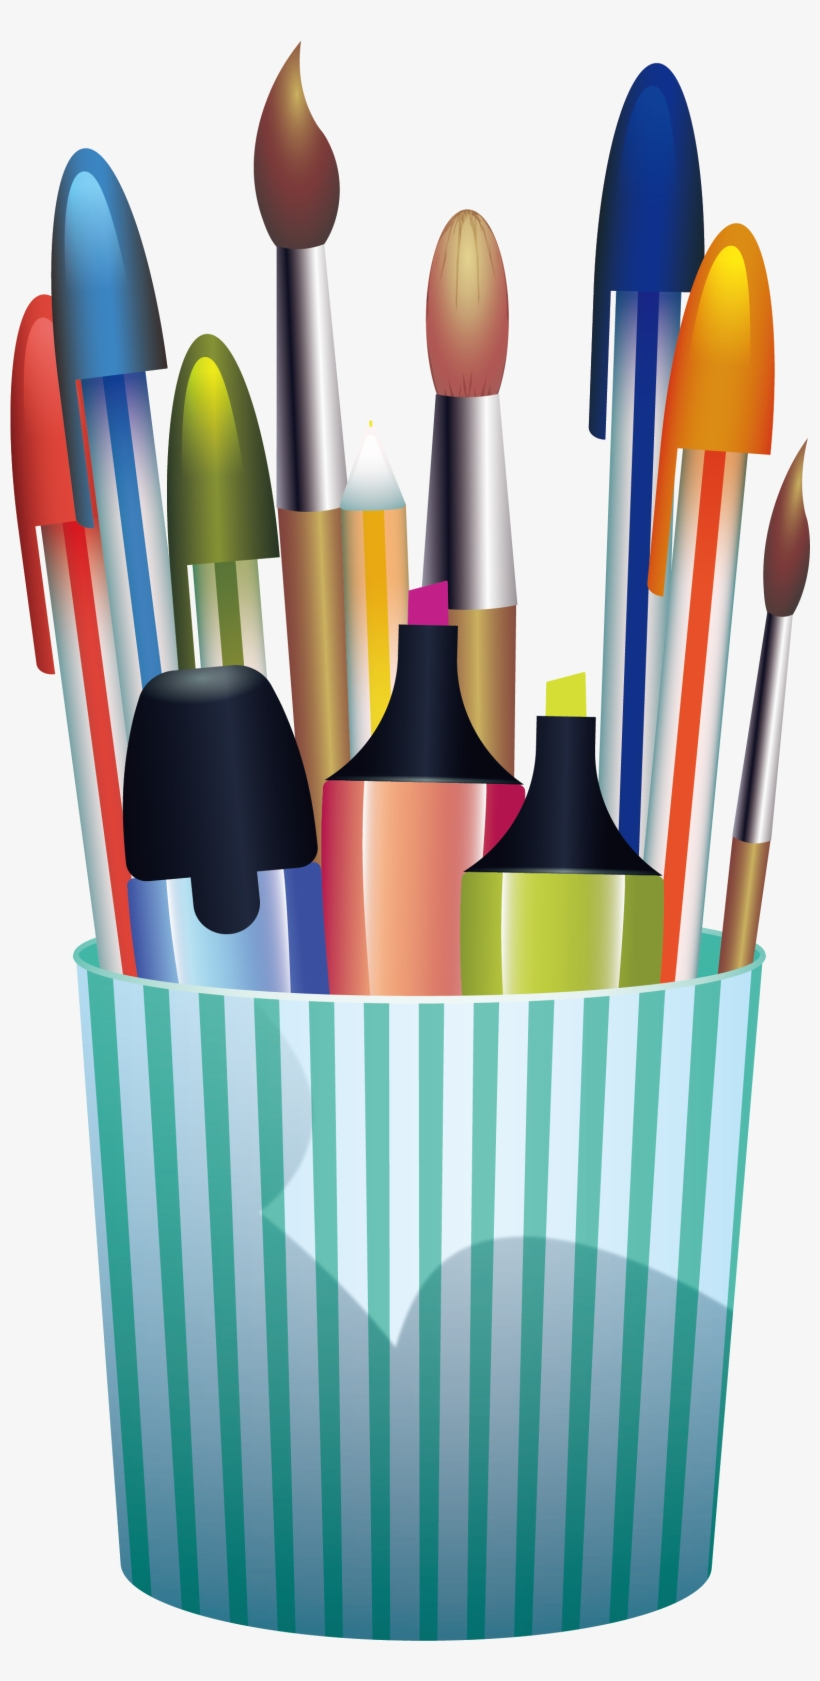 pencil clip art green stripe pen container pencil transparent png 2341x3459 free download on nicepng pencil clip art green stripe pen